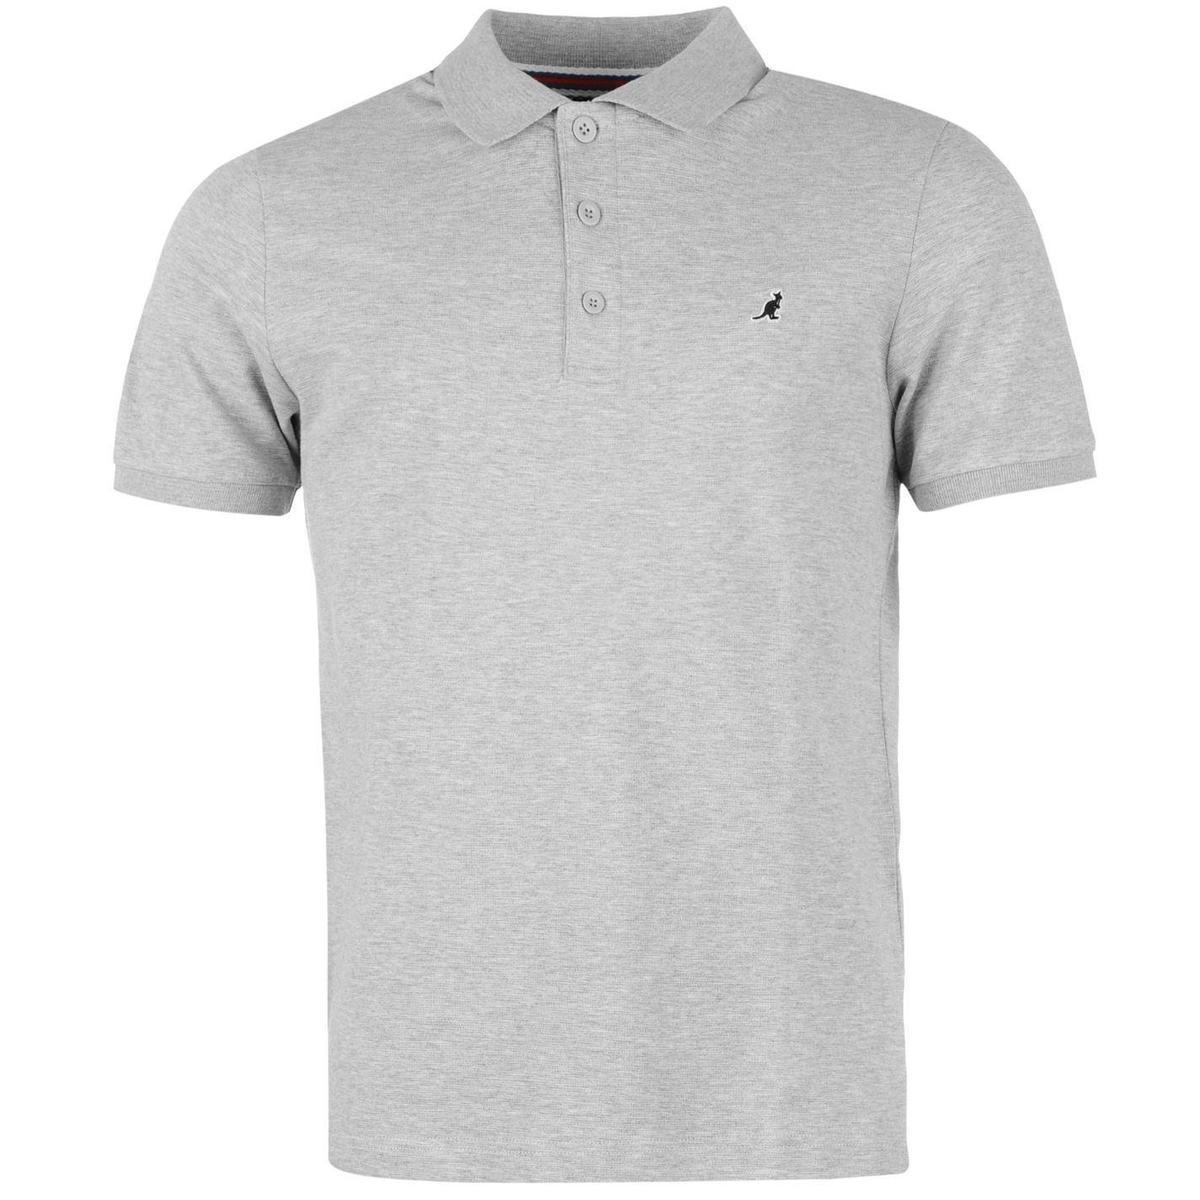 9f6ff590a1c6 Kangol Brit Fit Polo Shirt Mens Light Grey Marl Collared T Shirt Top Tee  Funny T Shirt Awesome T Shirts From Yuxin008, $13.8| DHgate.Com